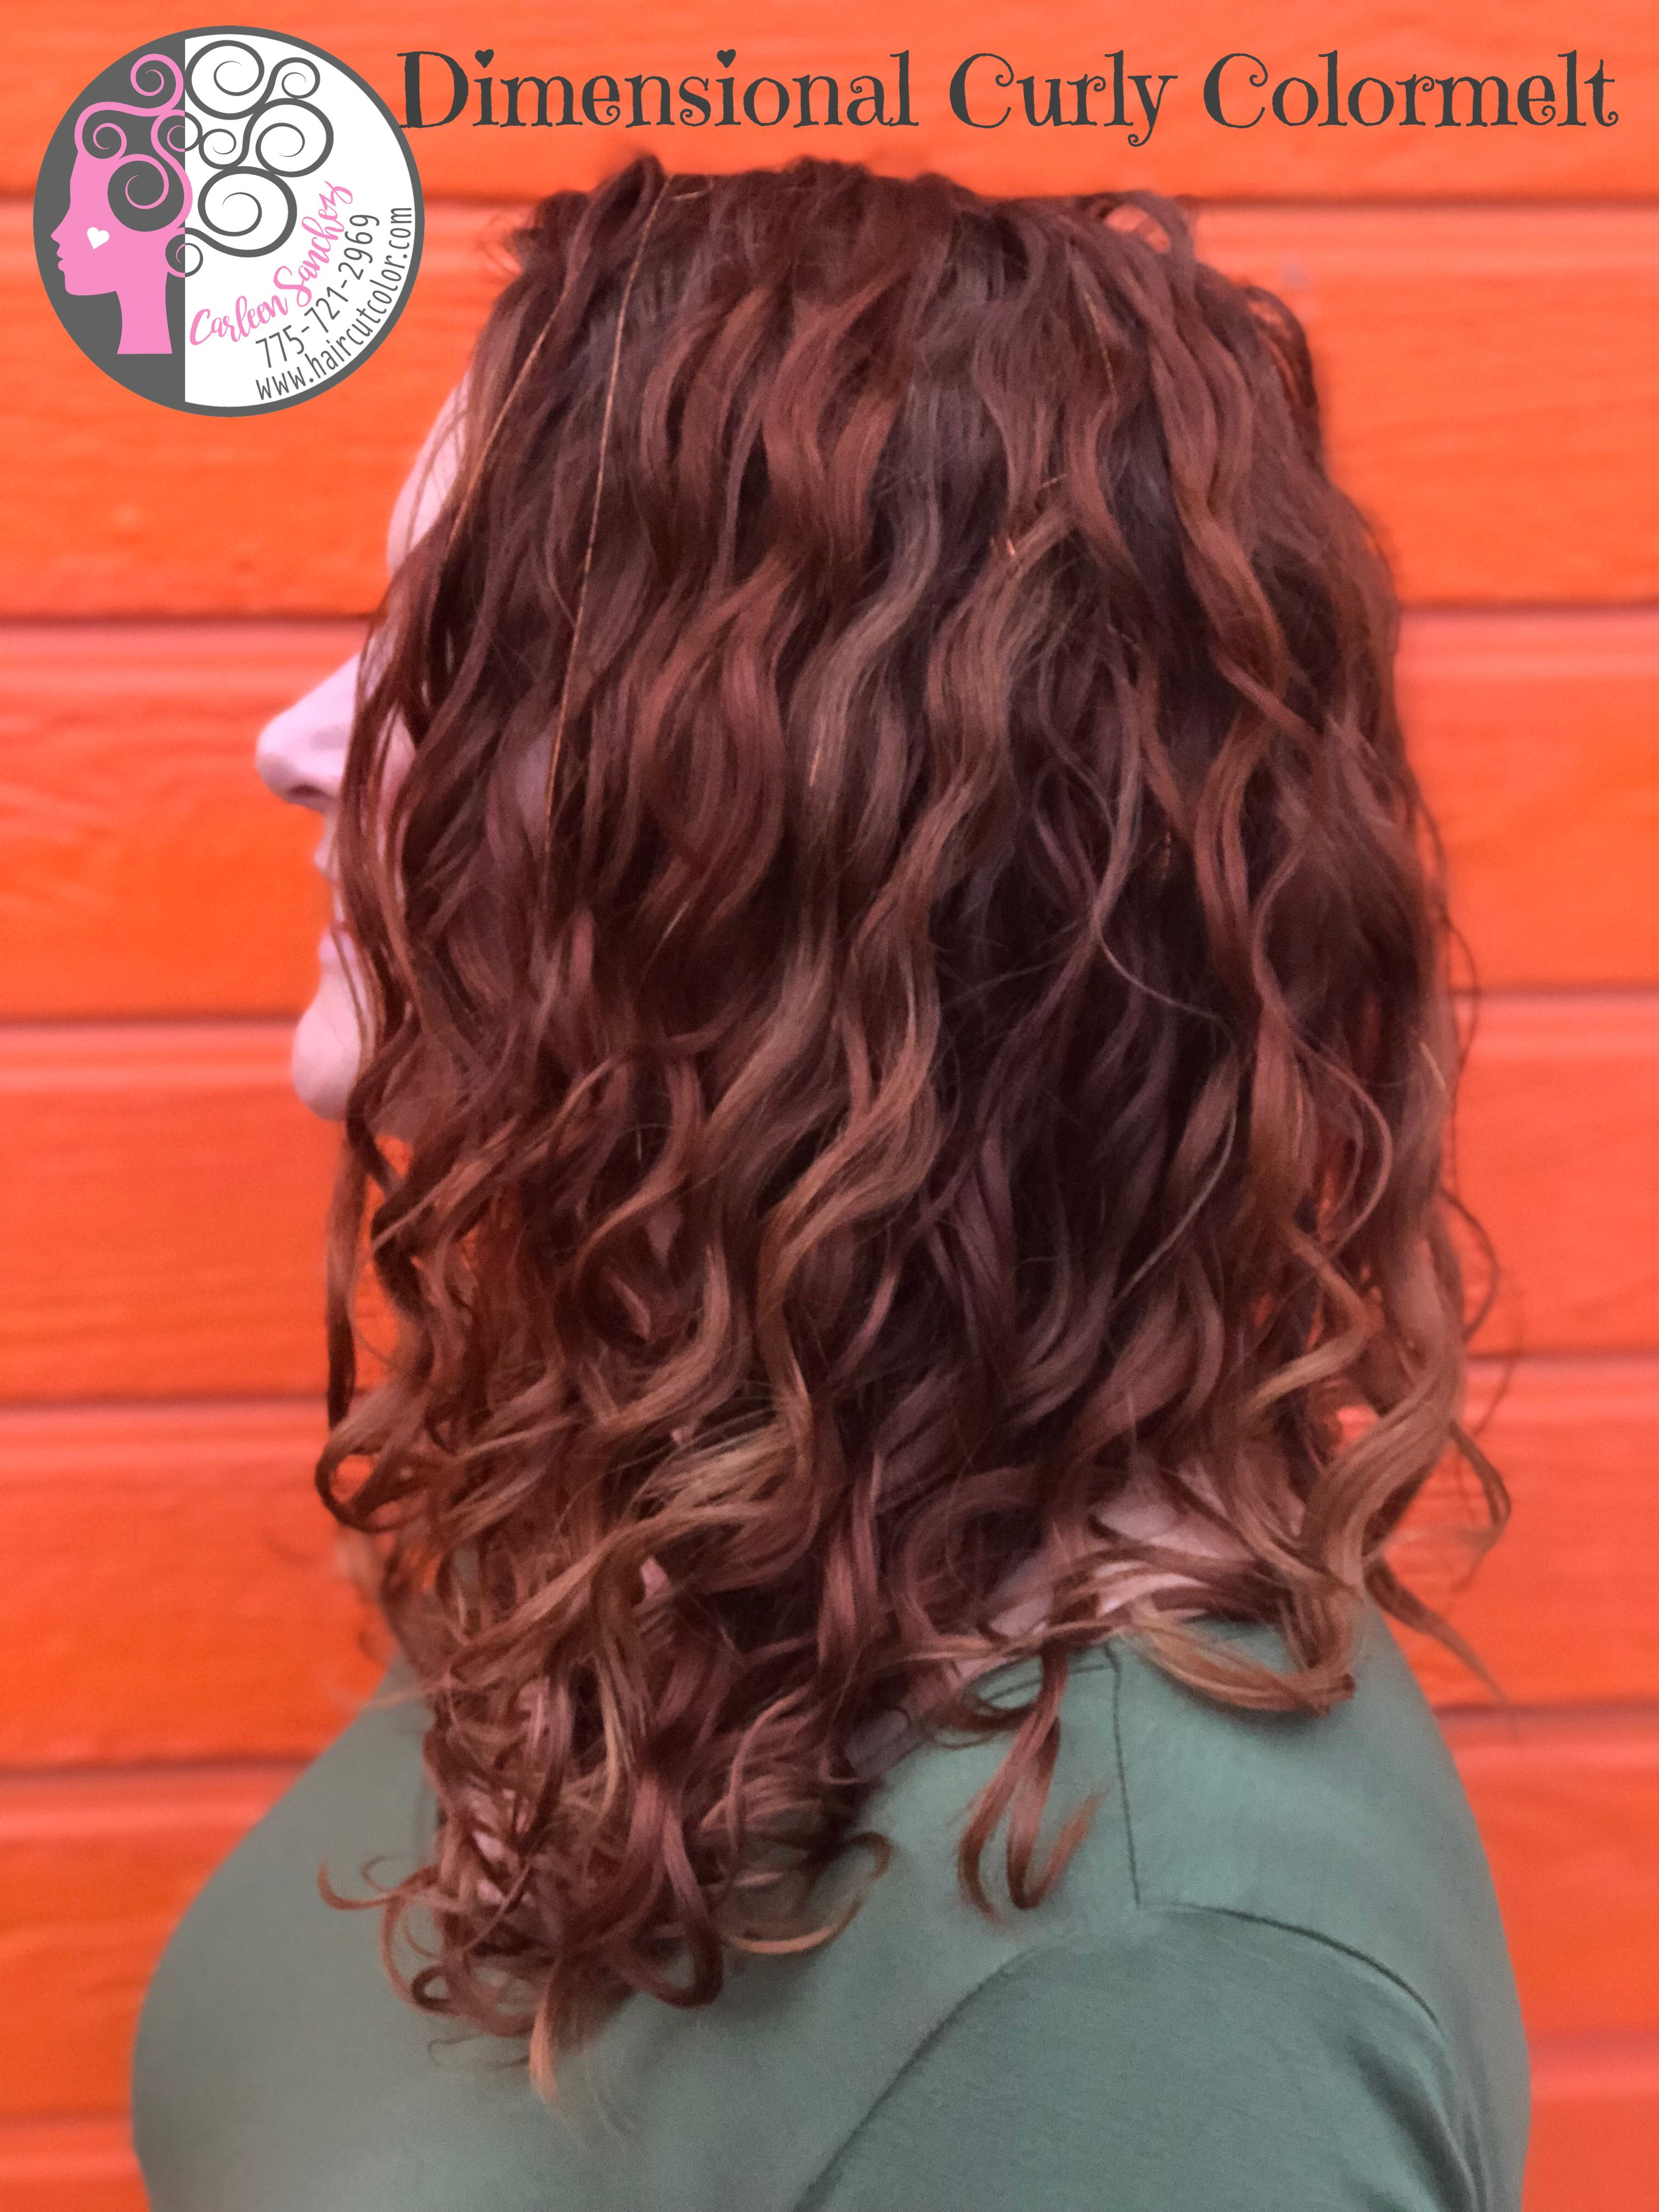 Naturally Curly Beach Waves red hair colormelt by Carleen Sanchez